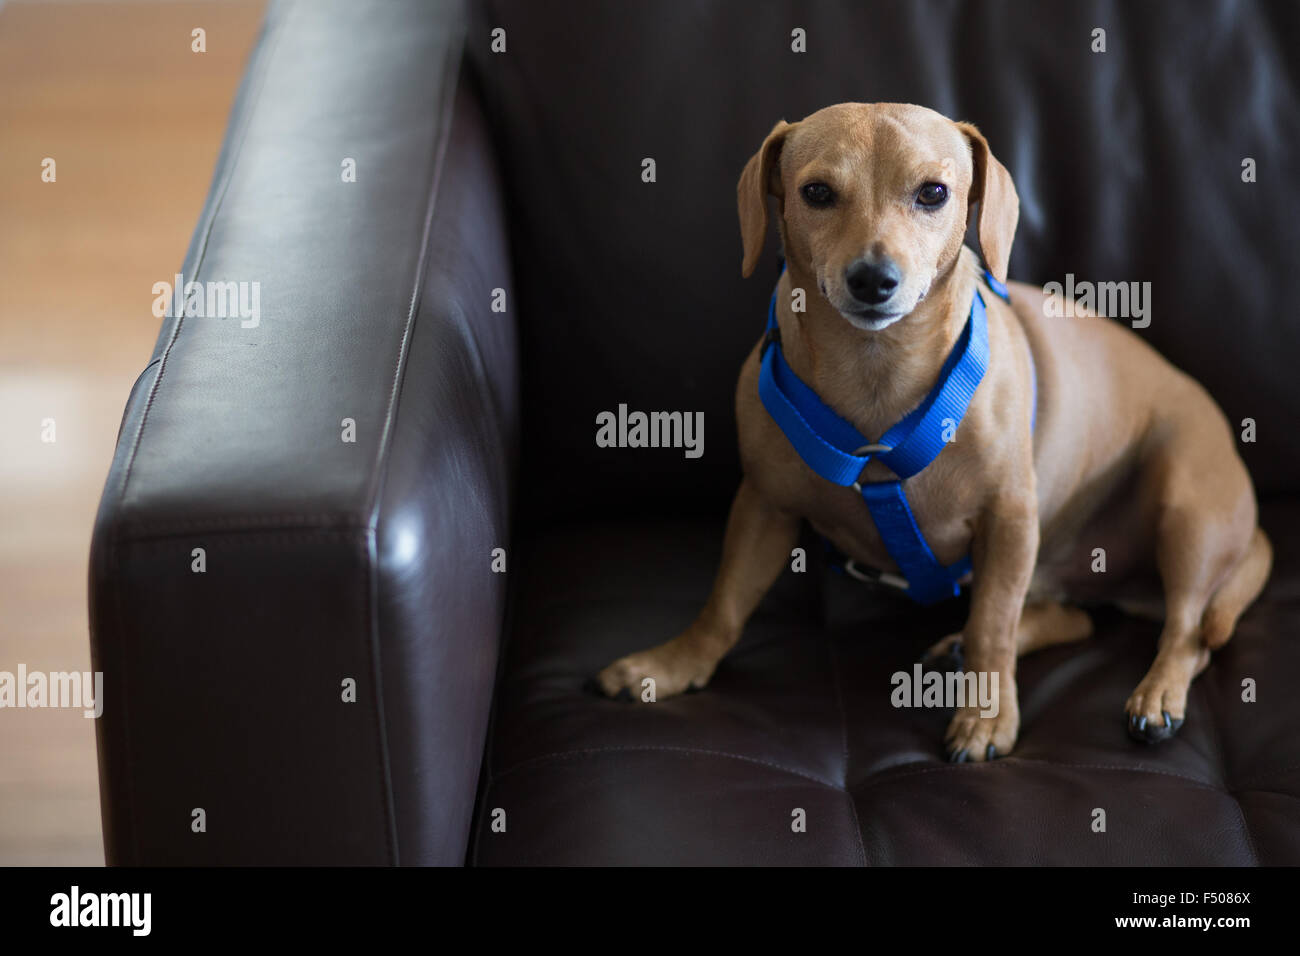 A cute dachshund dog wearing a blue harness sitting on a couch - Stock Image